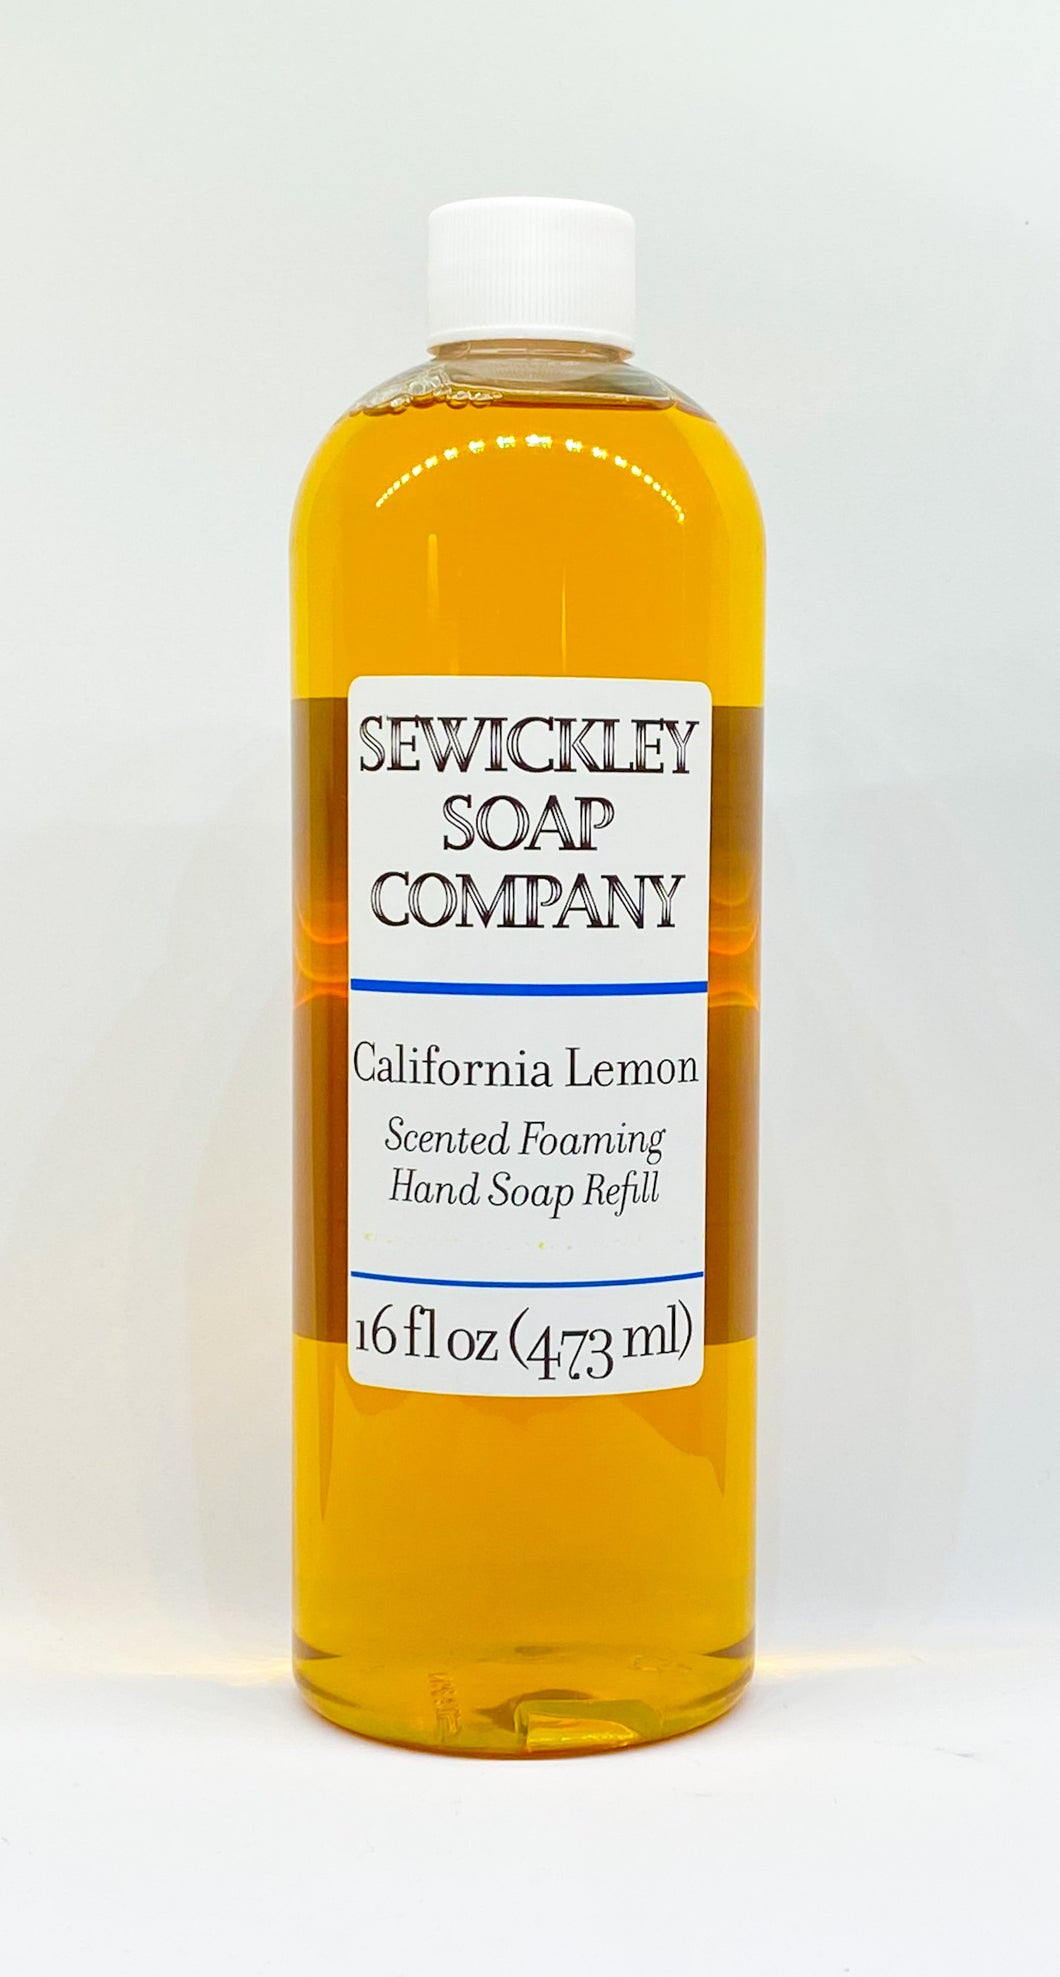 California Lemon Scented Foaming Hand Soap - 16oz Refill